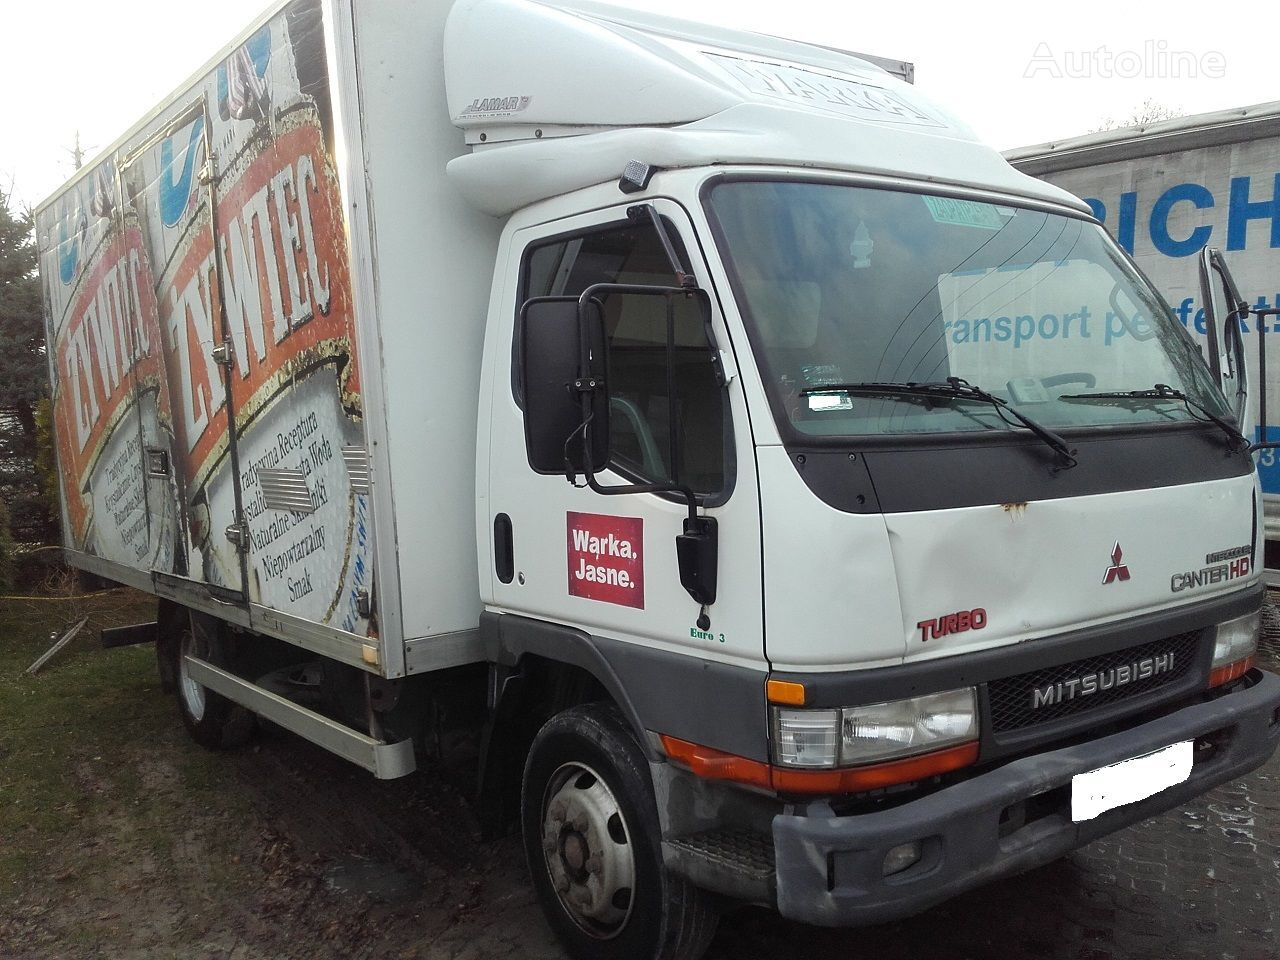 MITSUBISHI CANTER 3.9 HD closed box truck